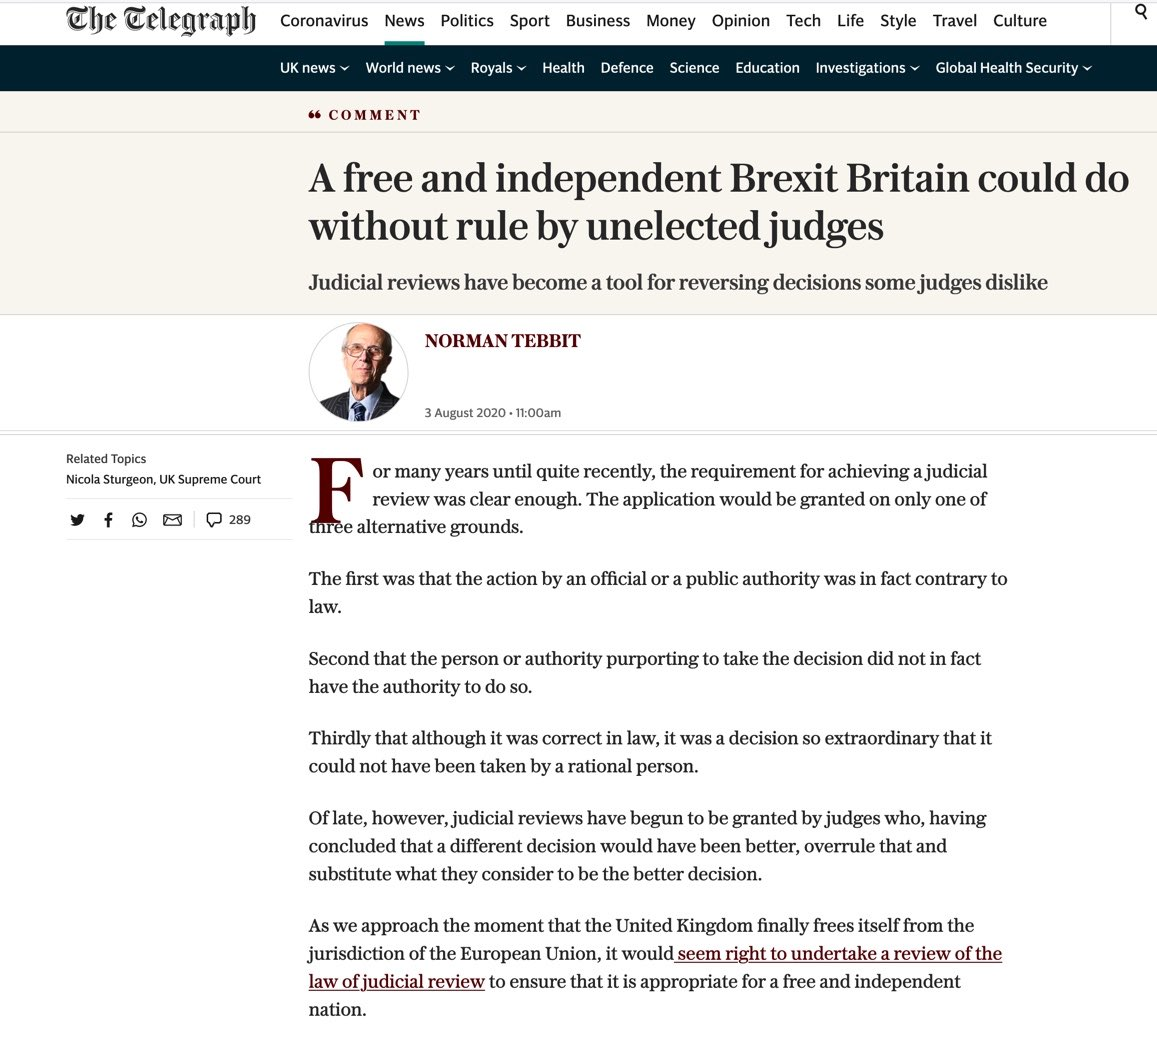 Brexiters:  We need to remove the independence of the judiciary as 1st step after Brexit.